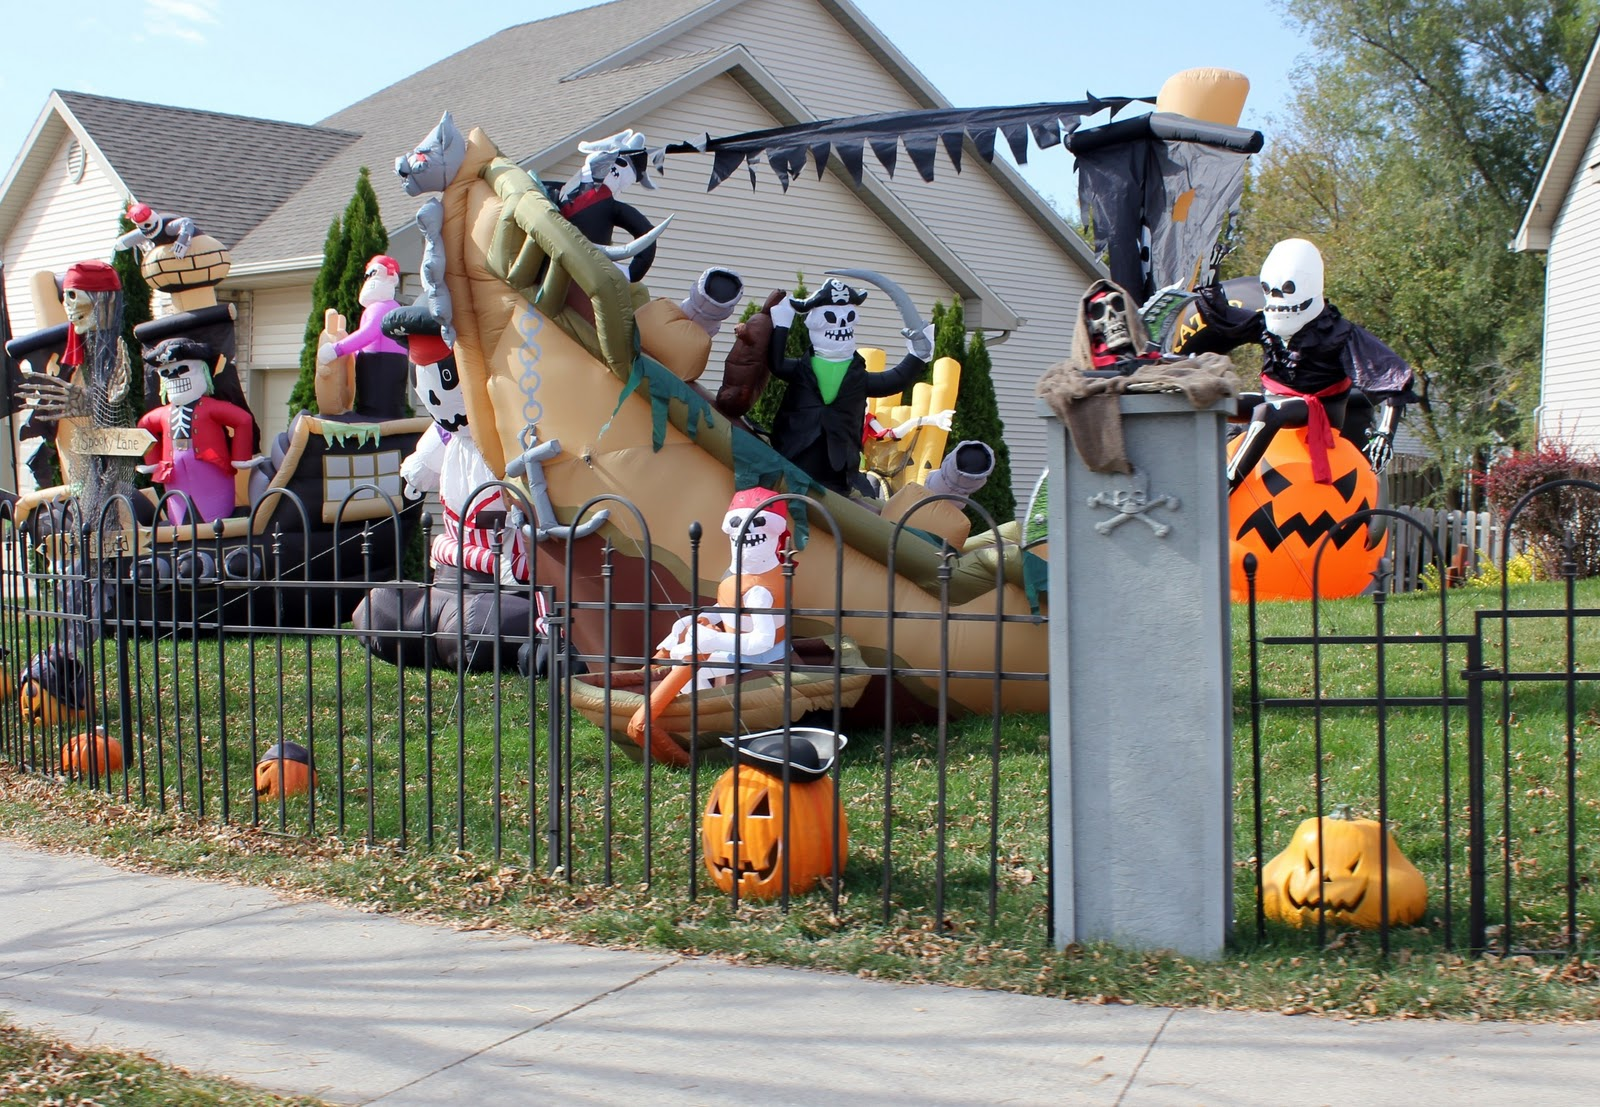 The Pirate House The 13 Best Halloween Houses Decorations! - Best Halloween House Decorations